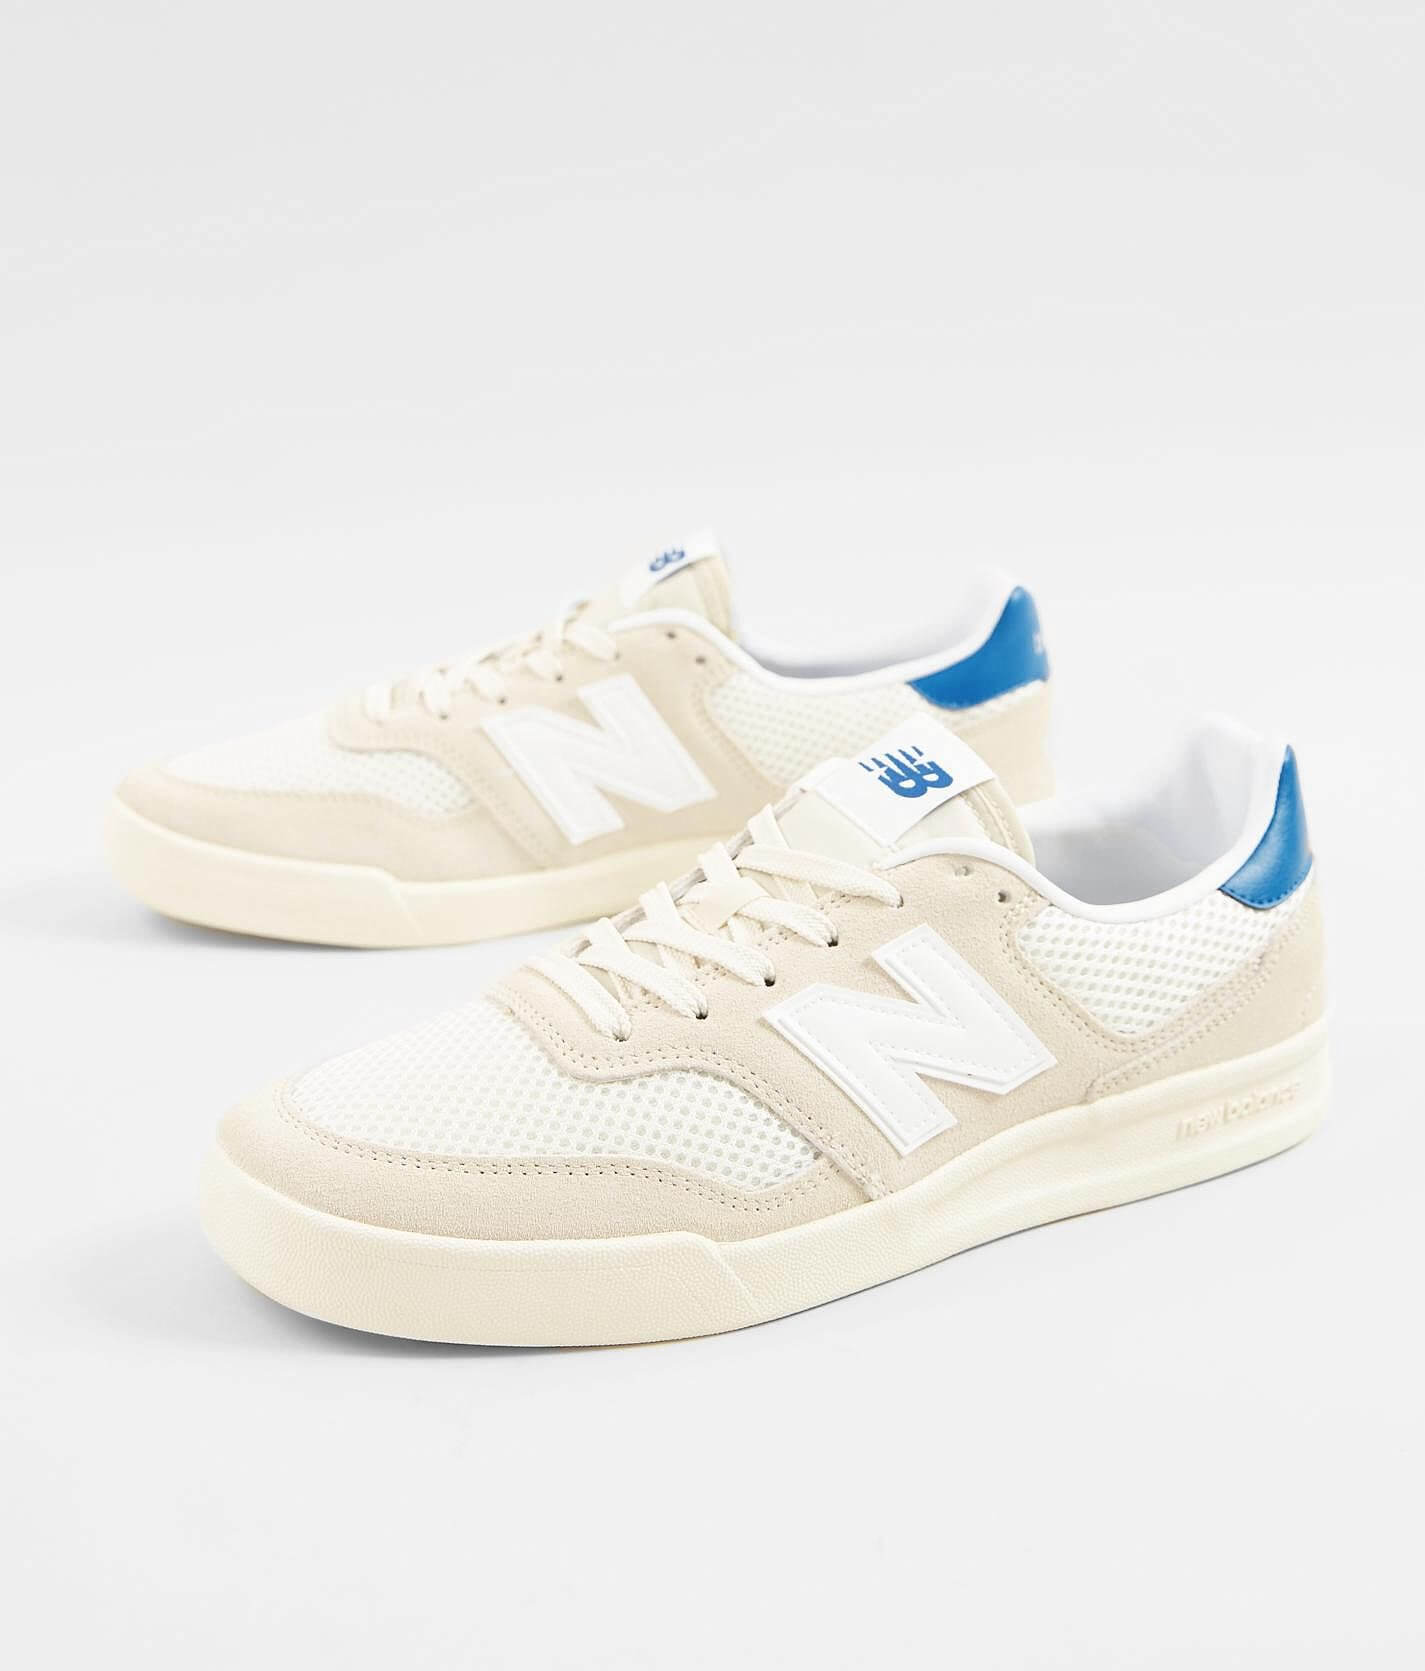 New Balance CRT300 V2 Leather Shoe - Men's Shoes in Off White ...